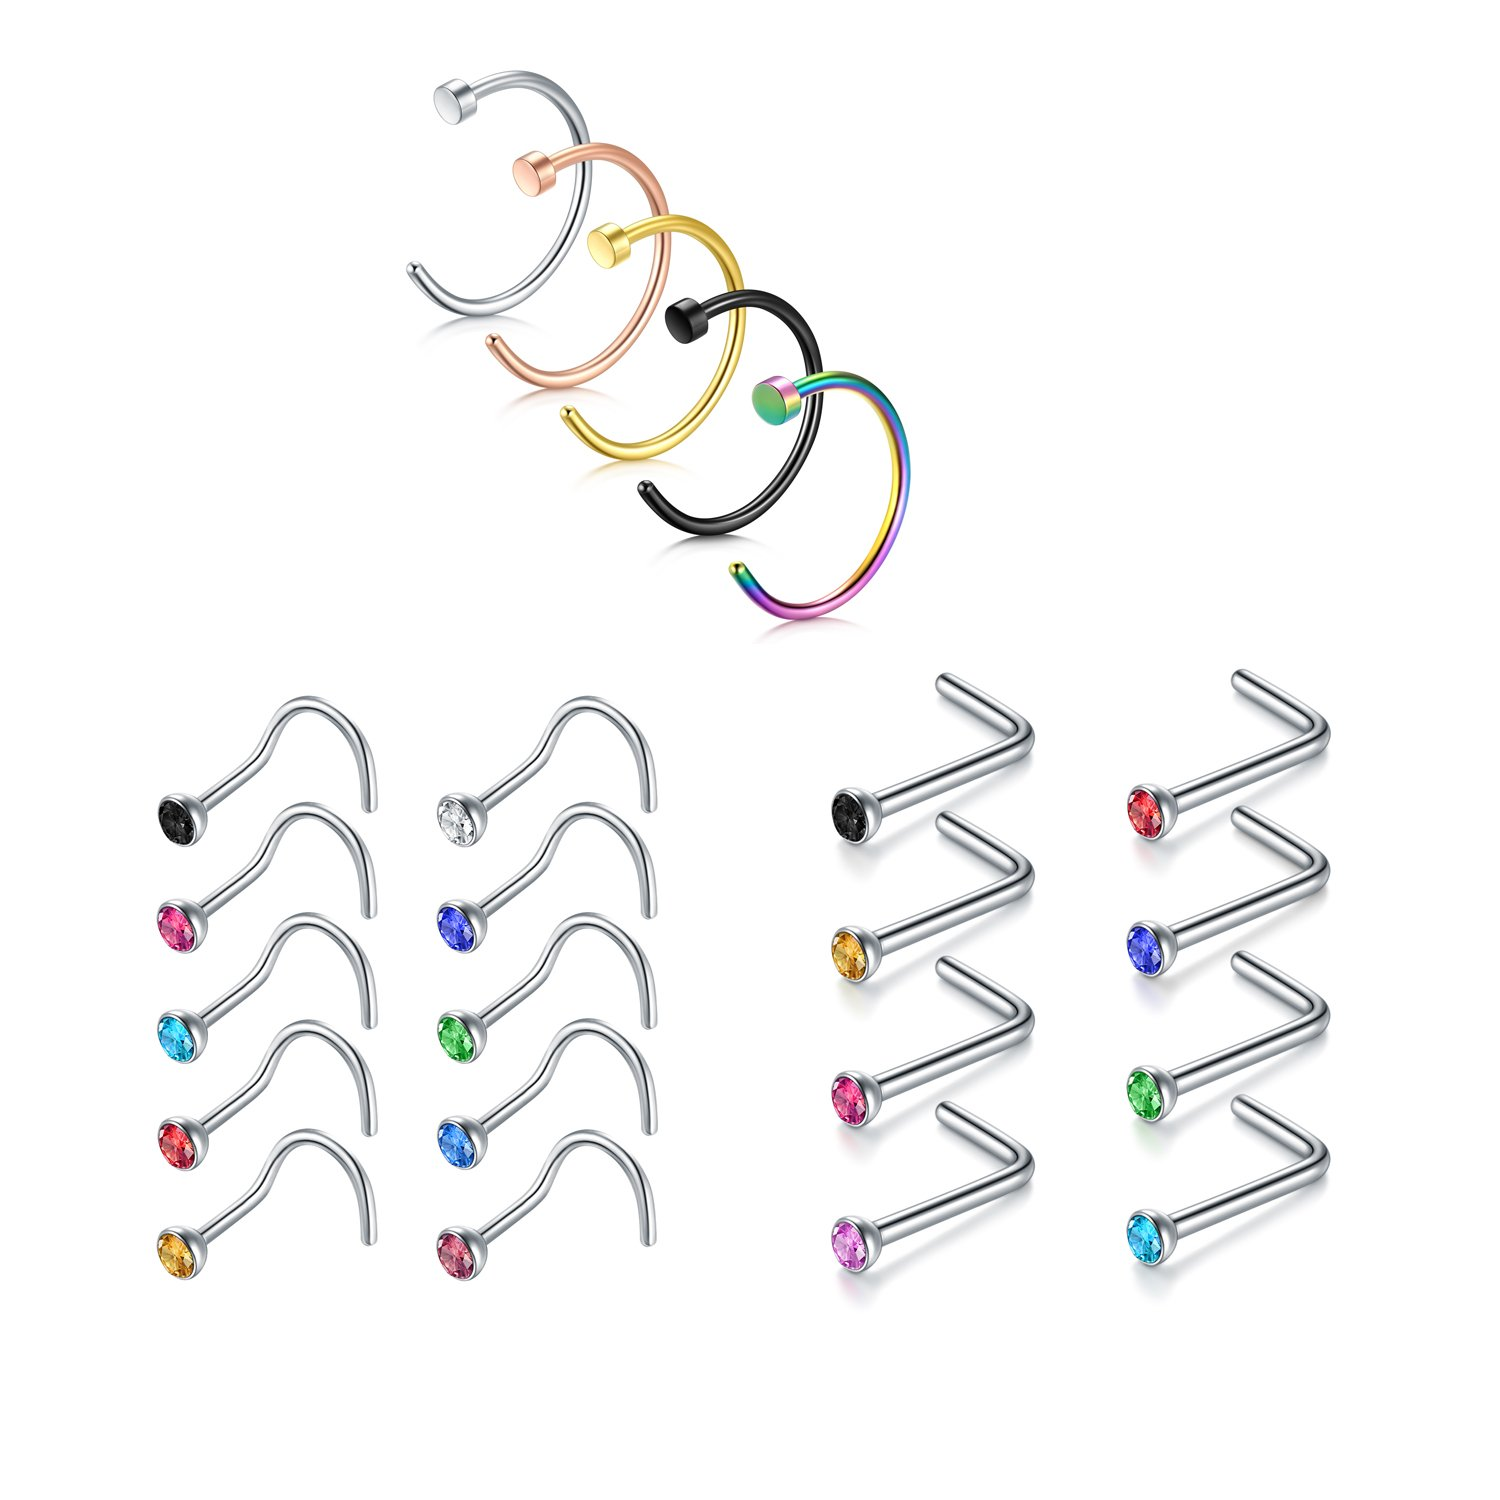 Nose Ring, 23PCS 18G 316L Surgical Stainless Steel Incaton Body Jewelry Piercing Nose Hoop Ring and L Shaped Ring